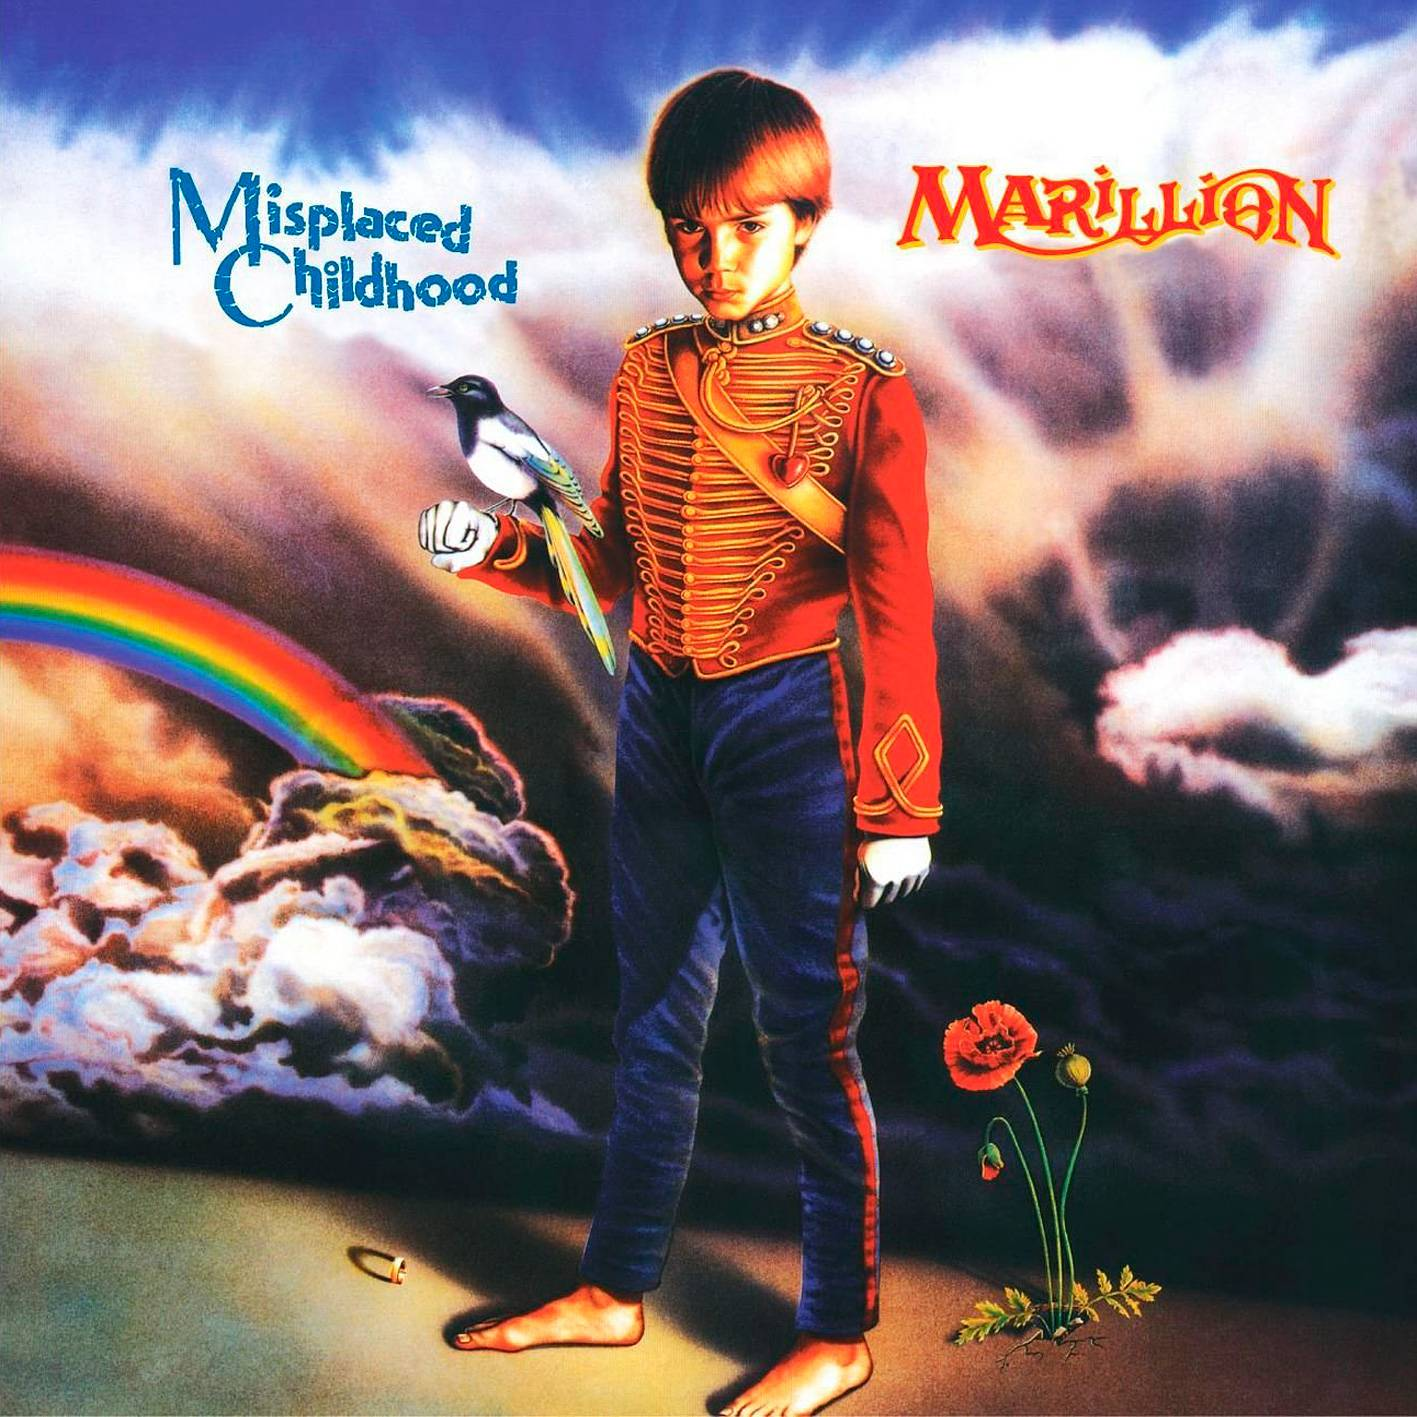 Marillion - Misplaced Childhood (1985/2017) [BD to FLAC 24/96